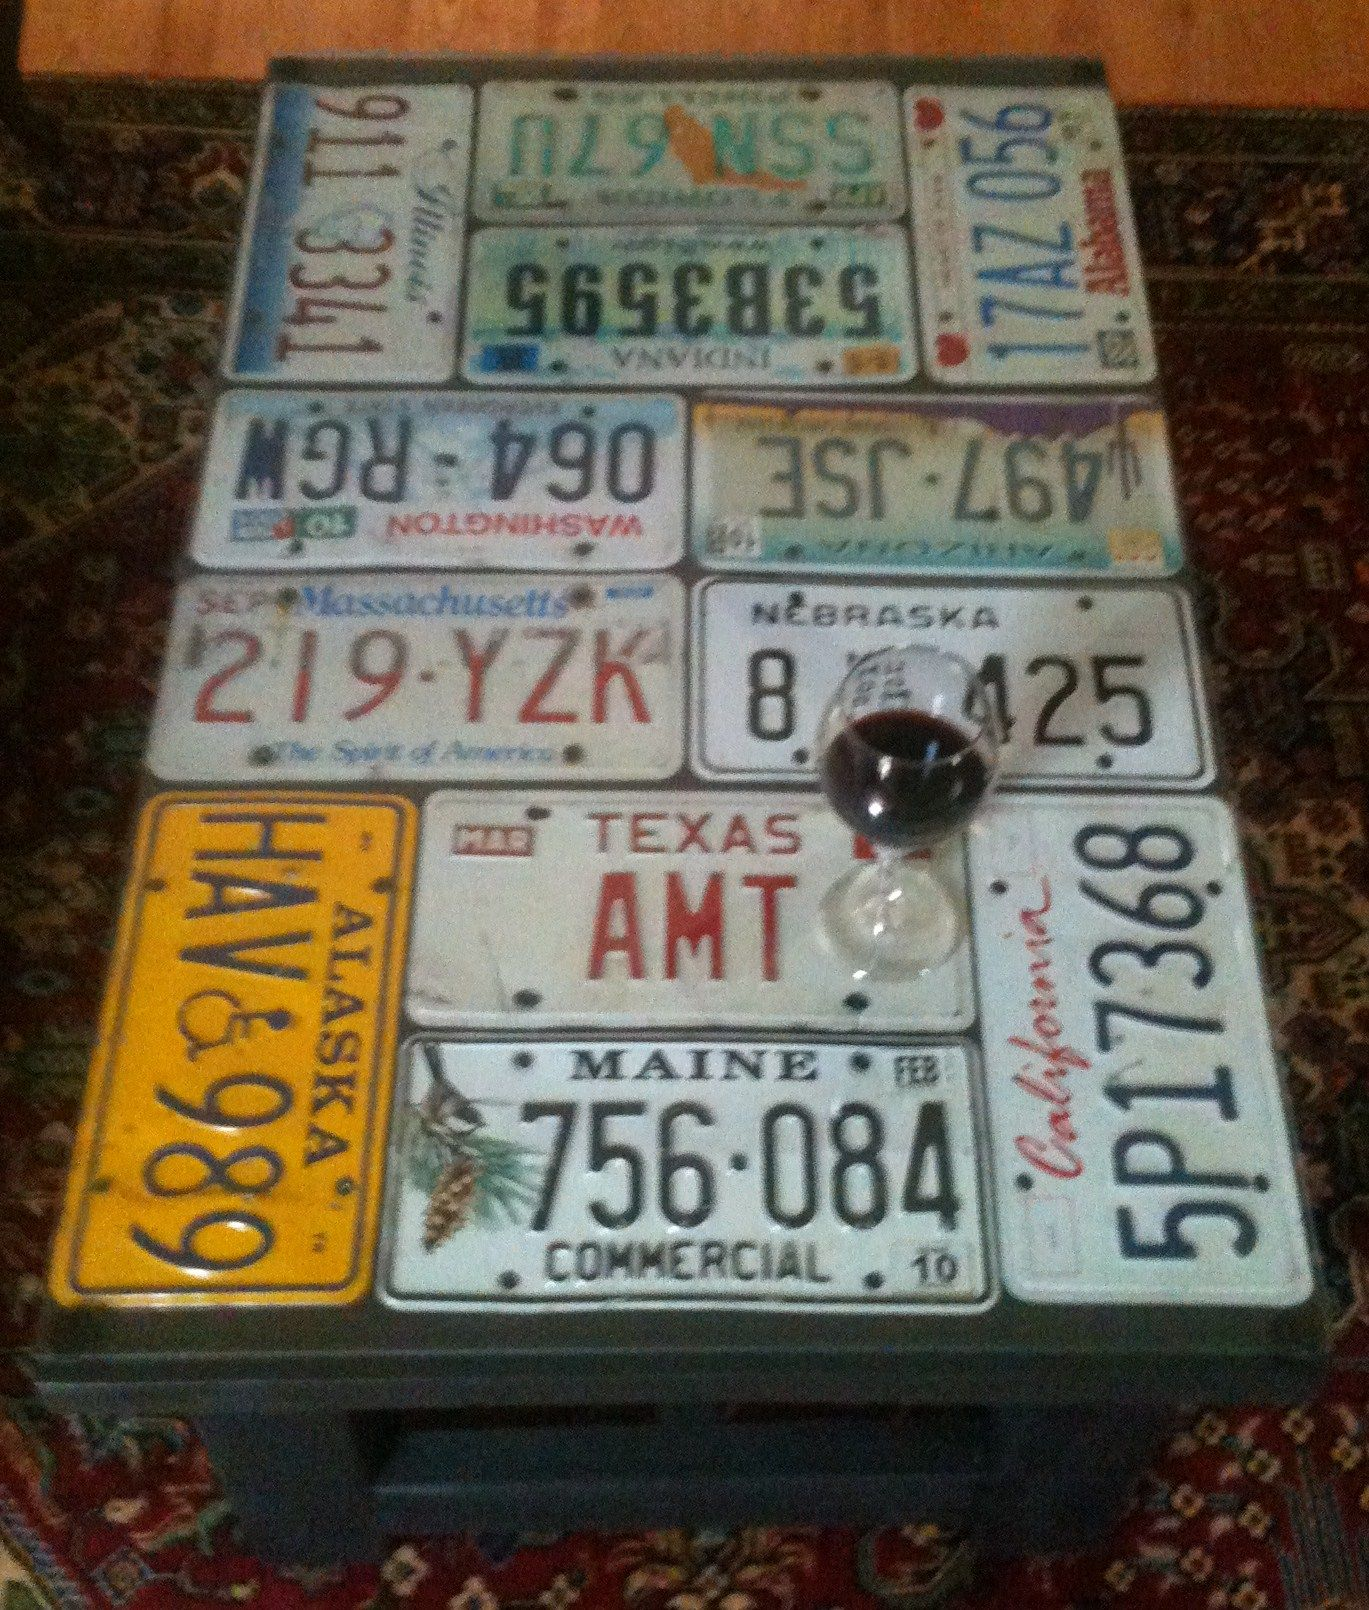 License plate coffee table : door license - pezcame.com